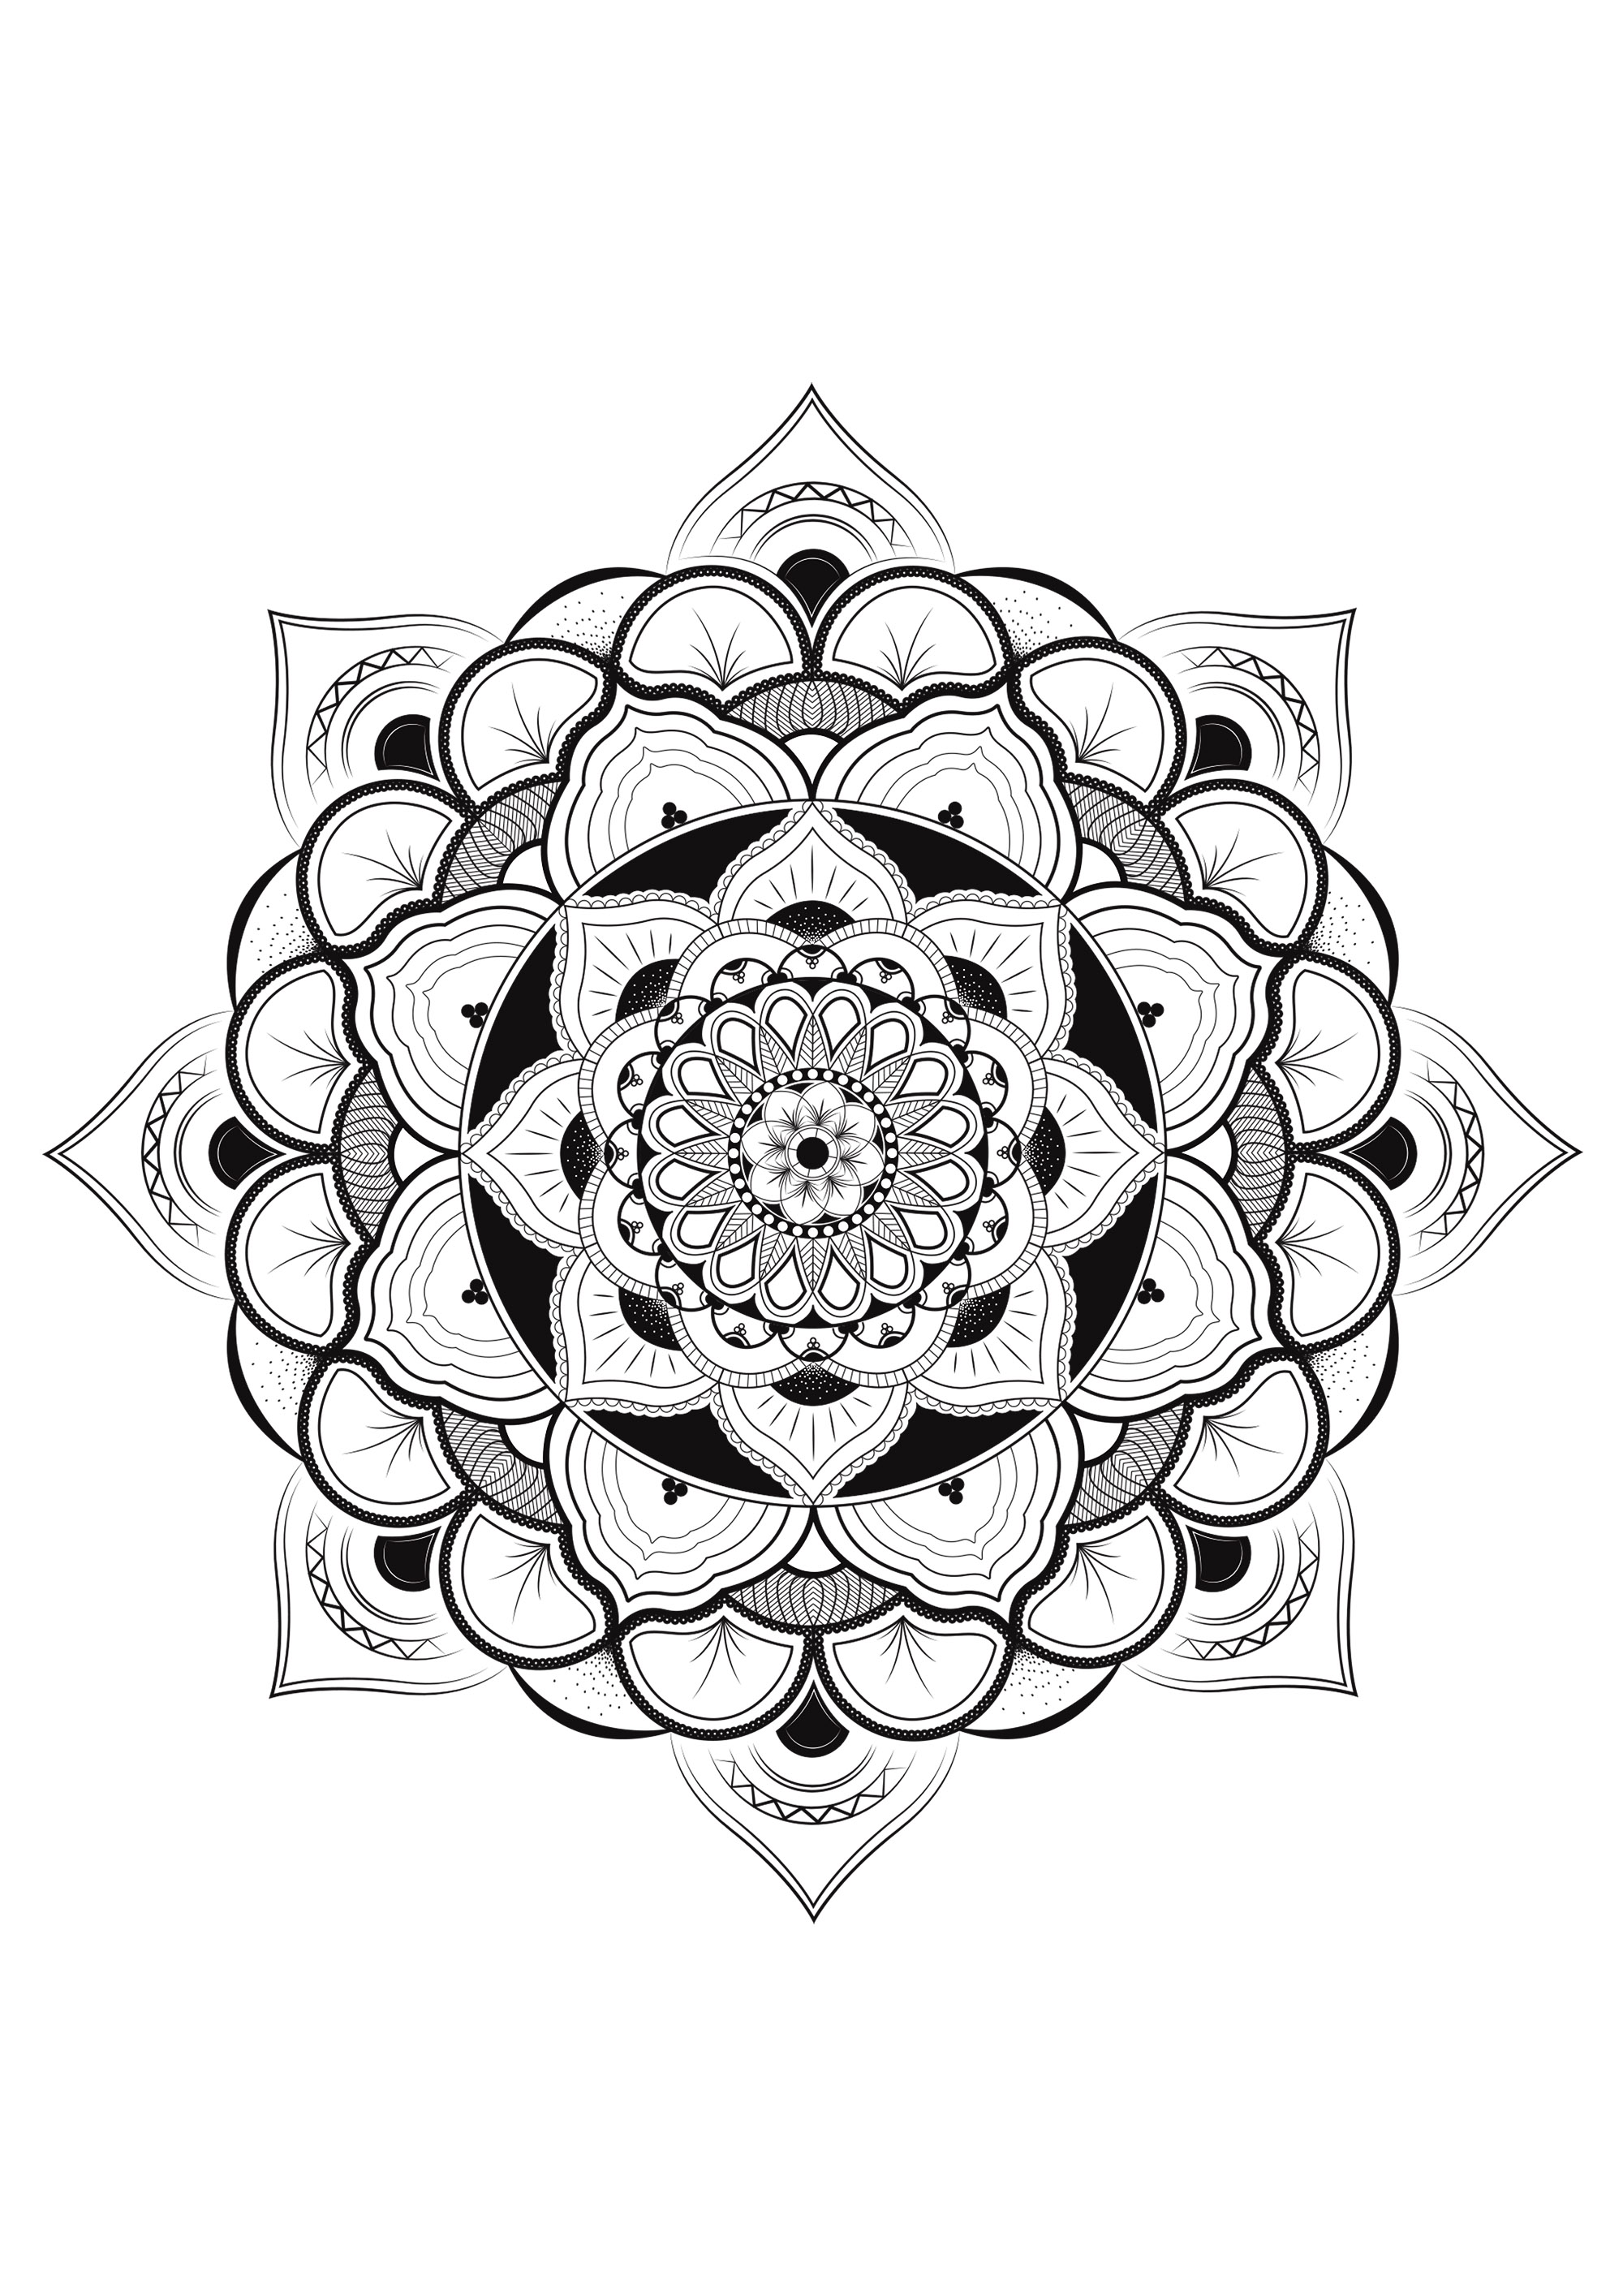 Free Collection Of Mandalas Coloring Pages